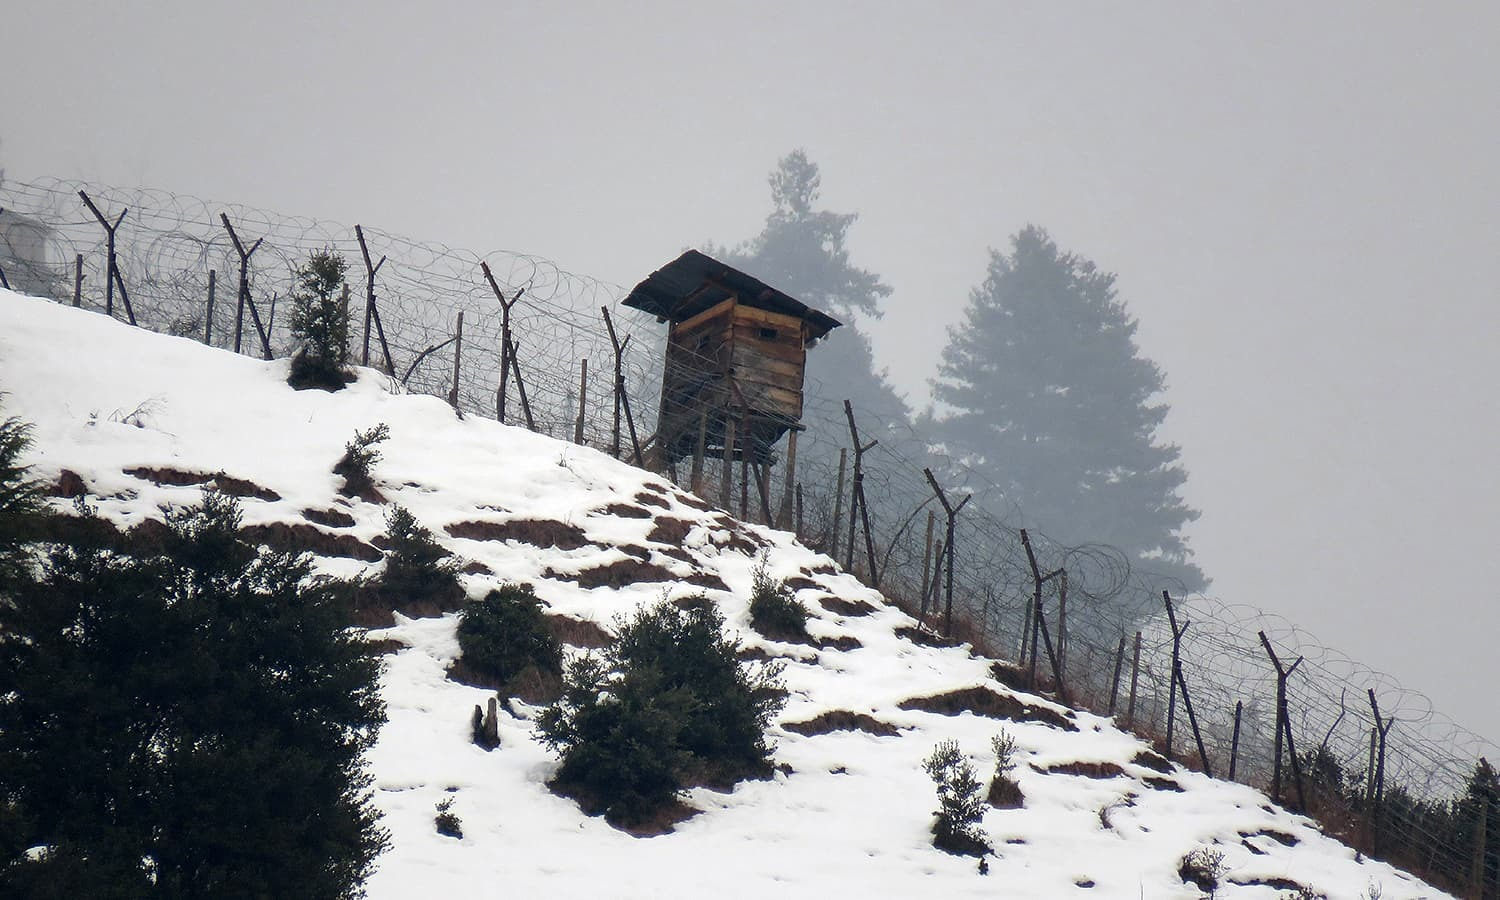 Fenced in: The Kashmir barrier that is endangering wildlife